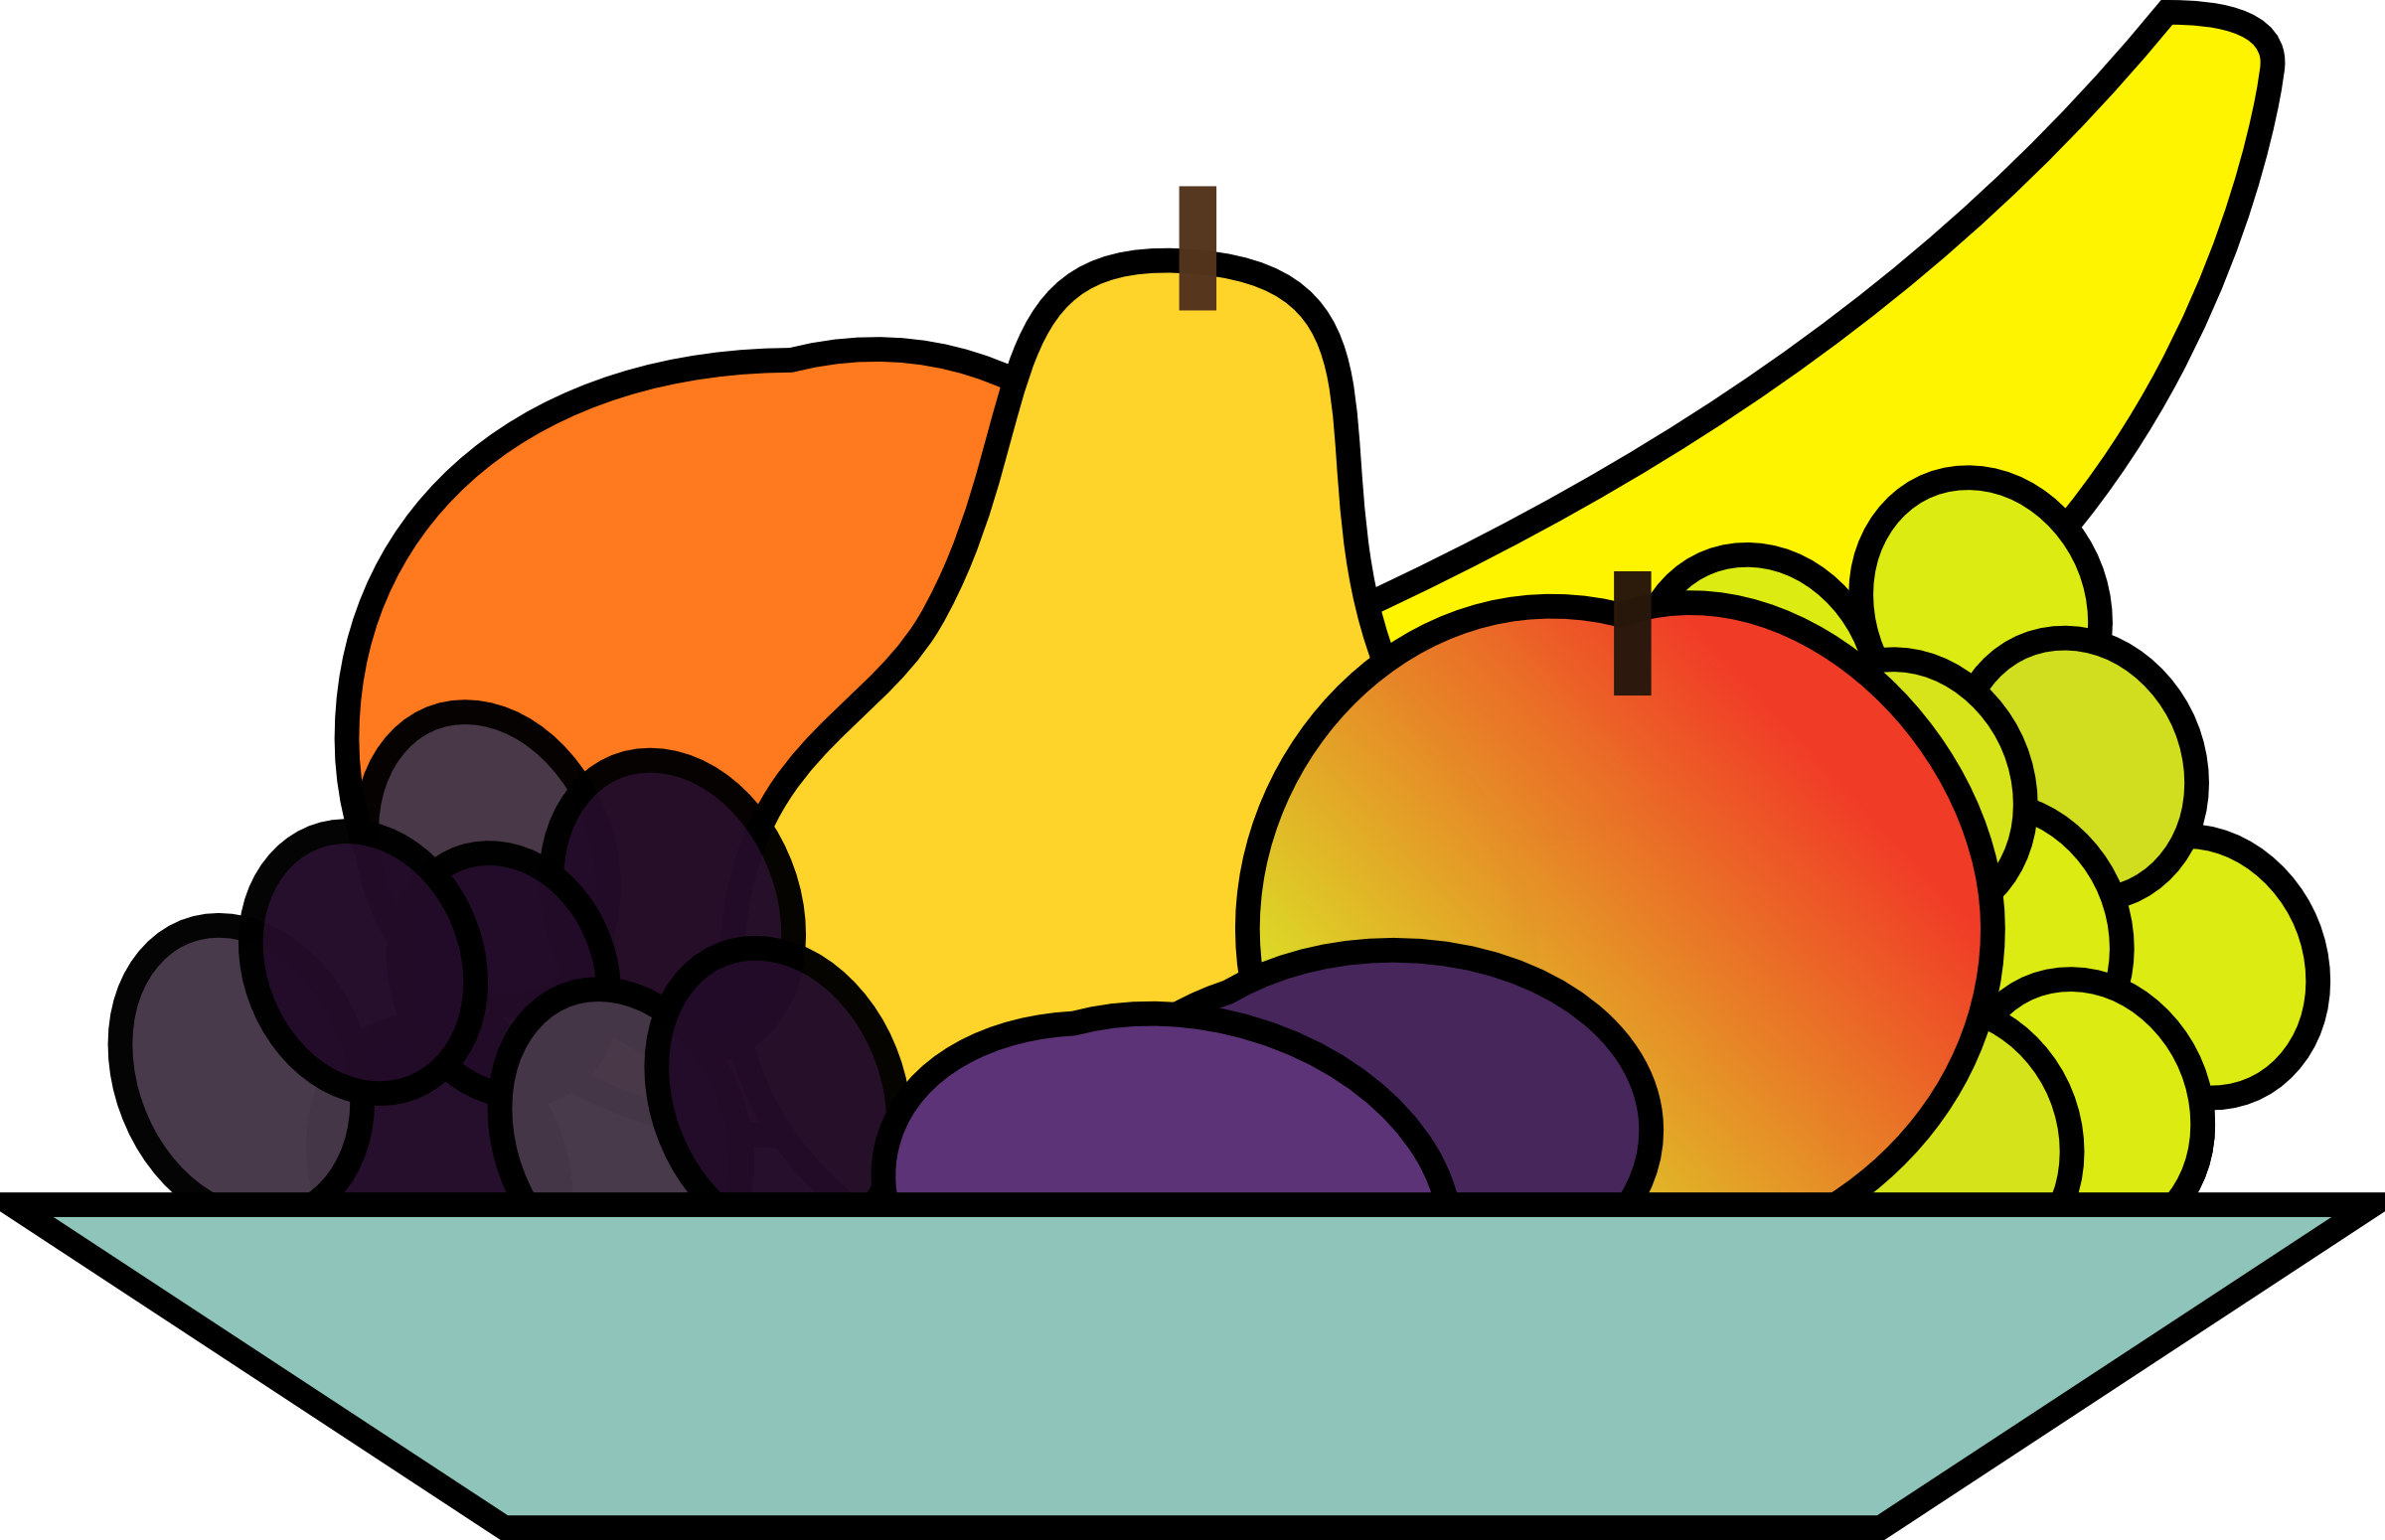 Fruit house clipart banner royalty free library Fruit Plate Clipart | Clipart Panda - Free Clipart Images banner royalty free library